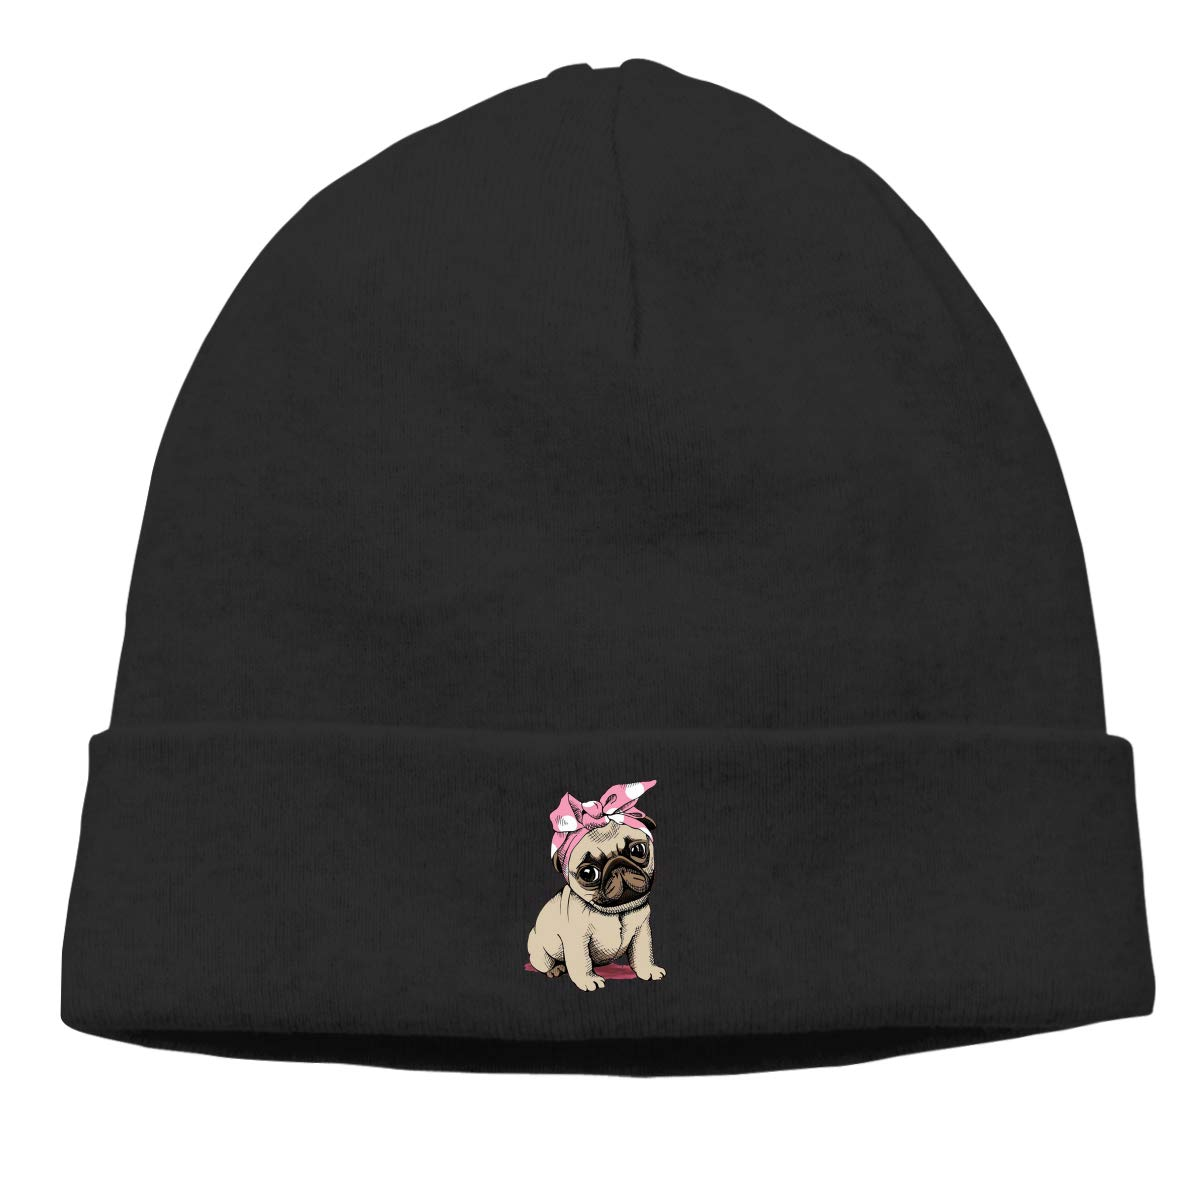 Year Round Comfort Serious Beanies for Serious Style Stretchy /& Soft Beanie Hats for Men /& Women Kljdiasjw Pink Pug Warm